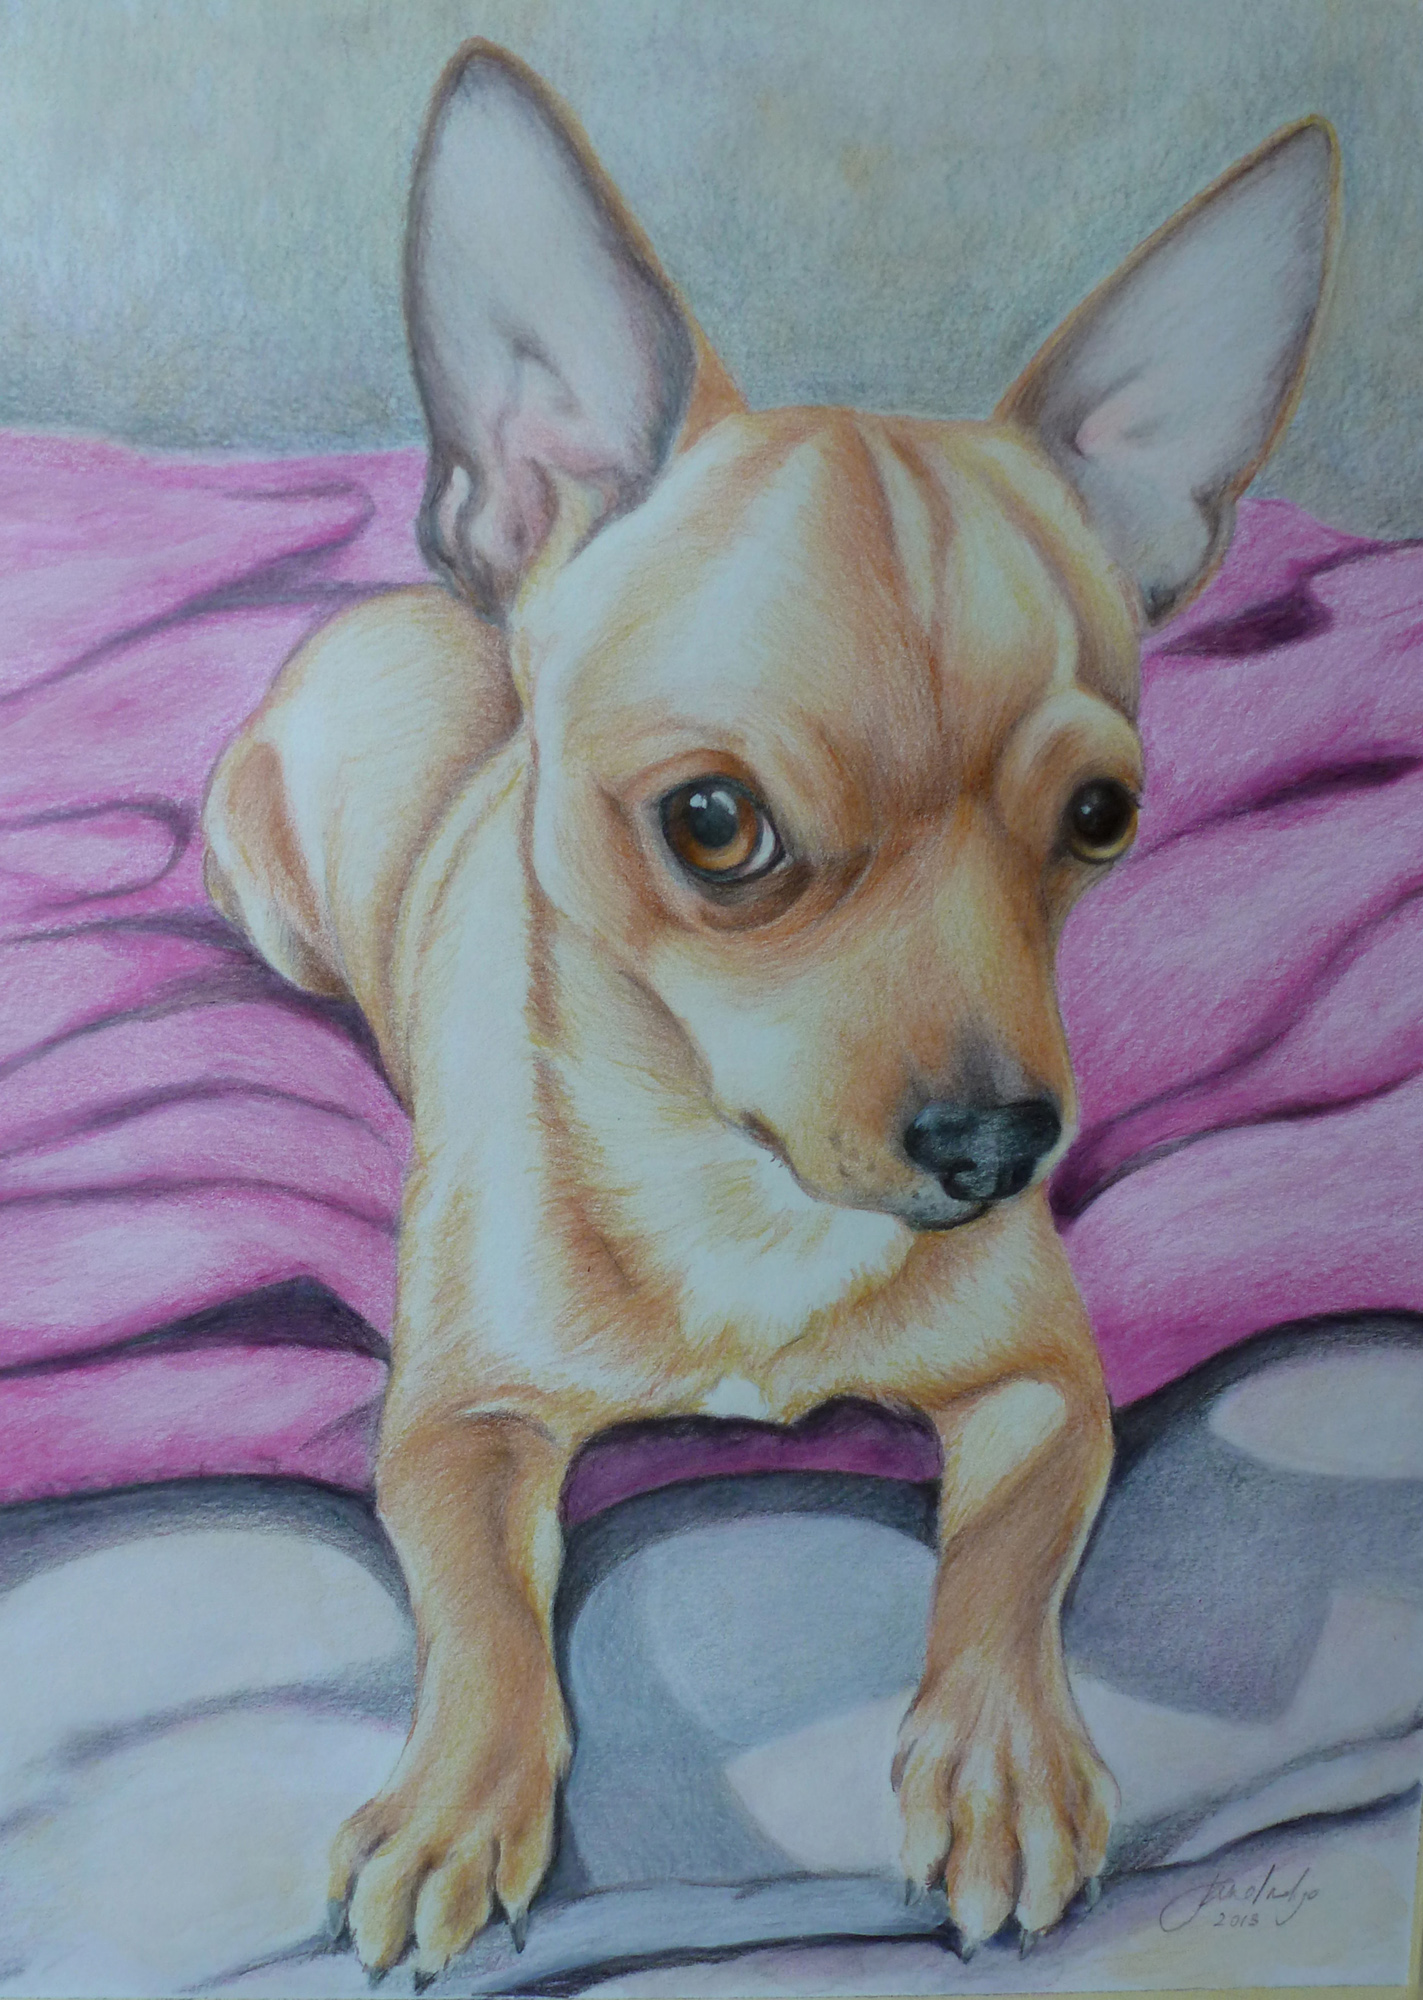 An portrait in coloured pencils of a Chihuahua dog by Jane Indigo Moore